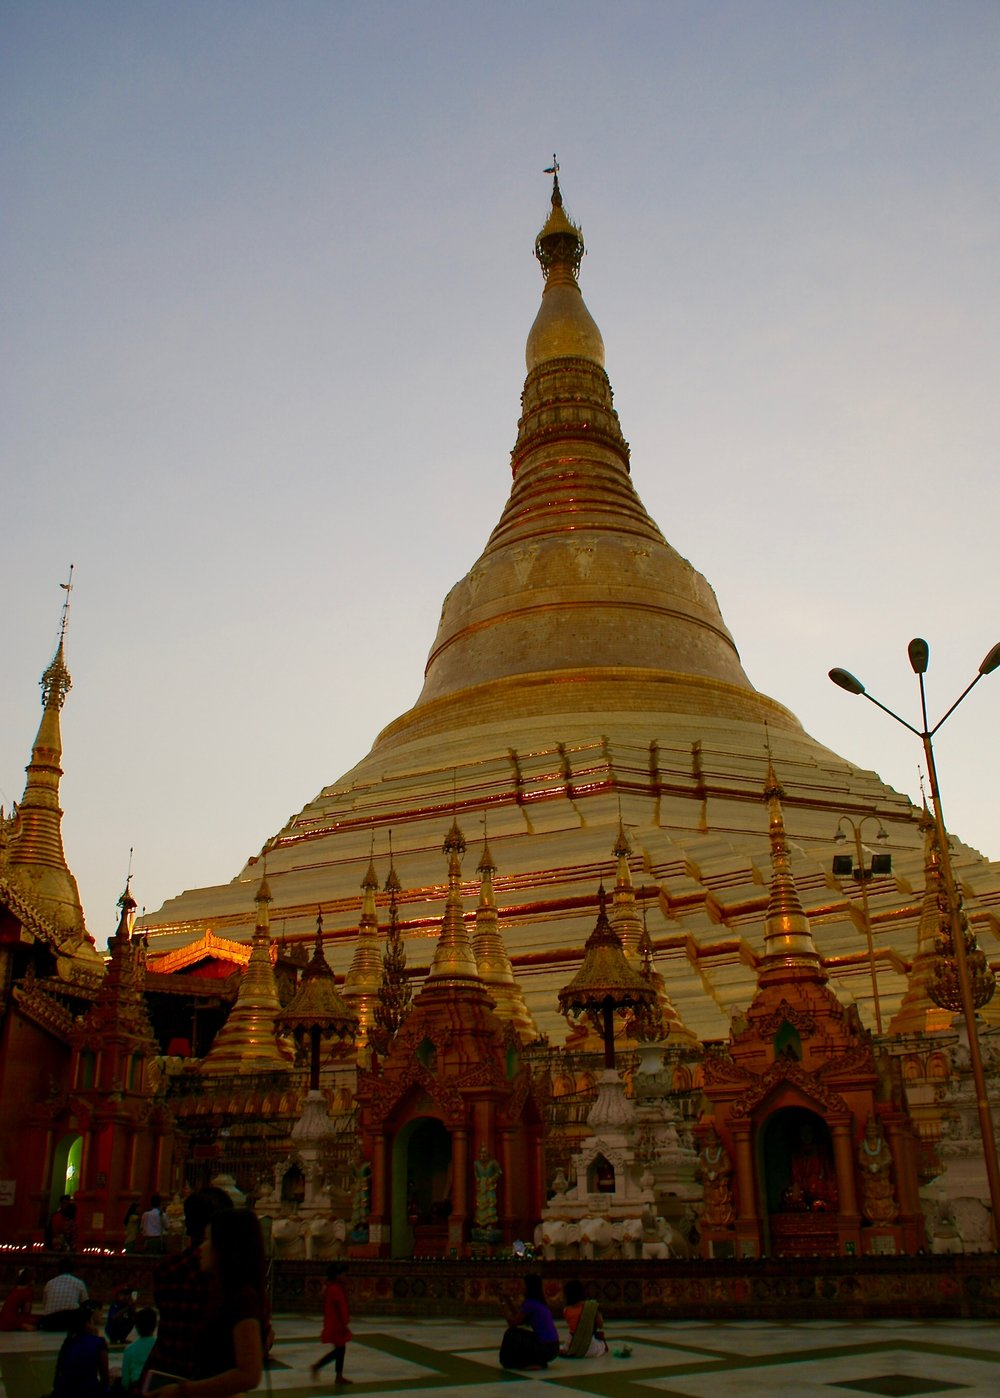 The Shwedagon Paya at sunset is a site to behold.  There are few photos that can even begin to do it justice.  The giant golden pagoda reflects light everywhere, it's a beacon that can be seen from miles away around the city of Yangon.